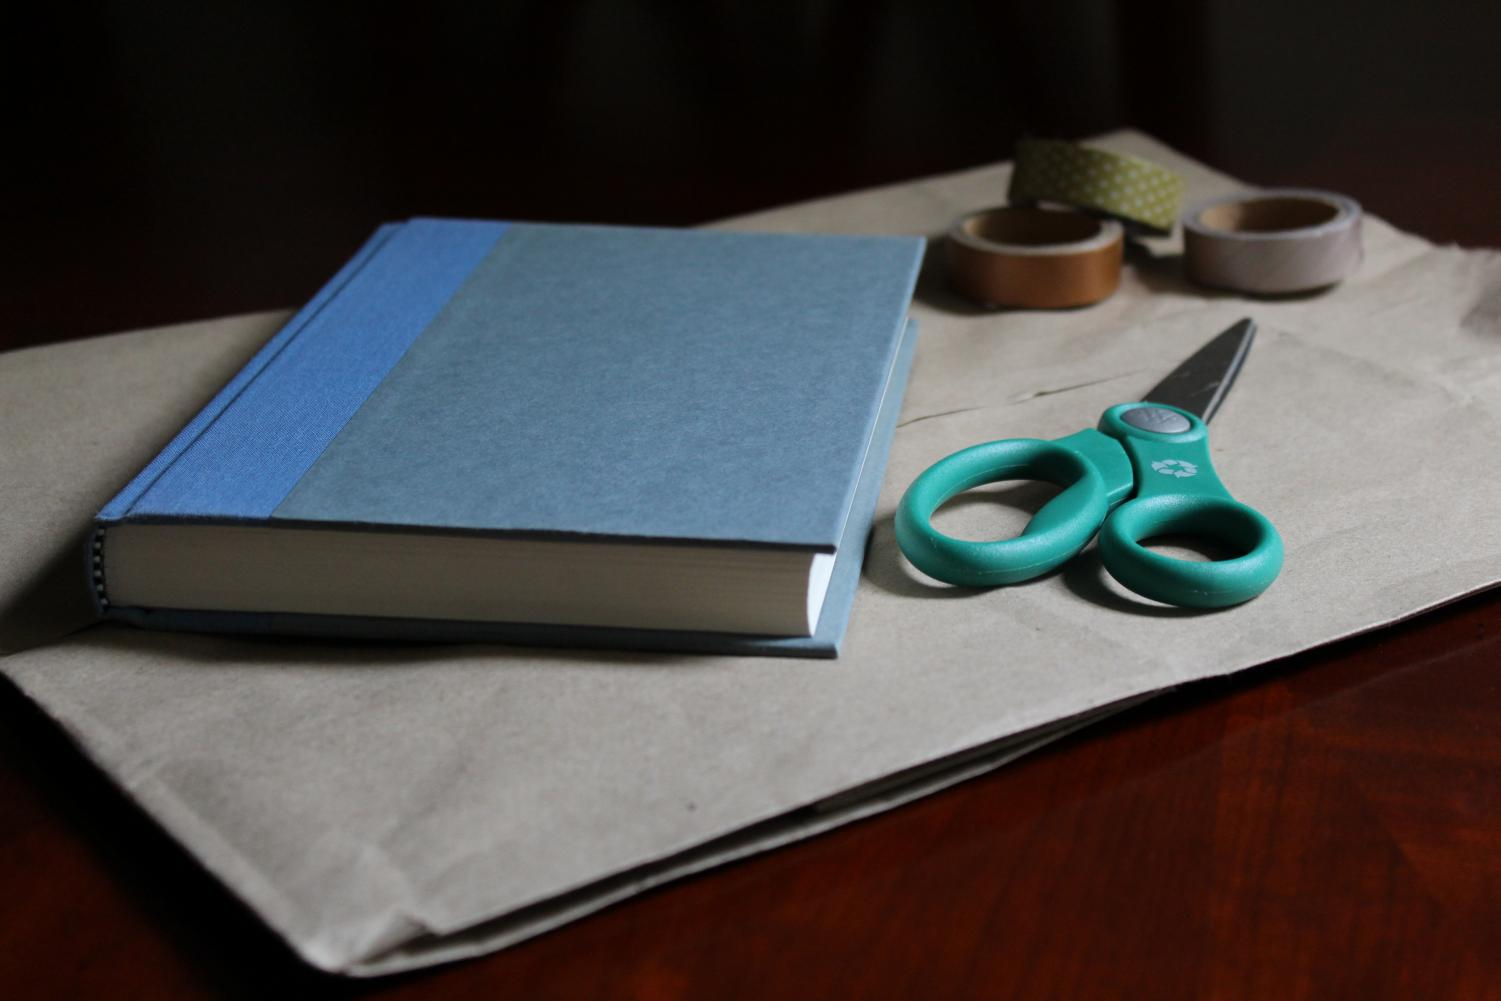 Only a few household materials are needed to create a book cover.